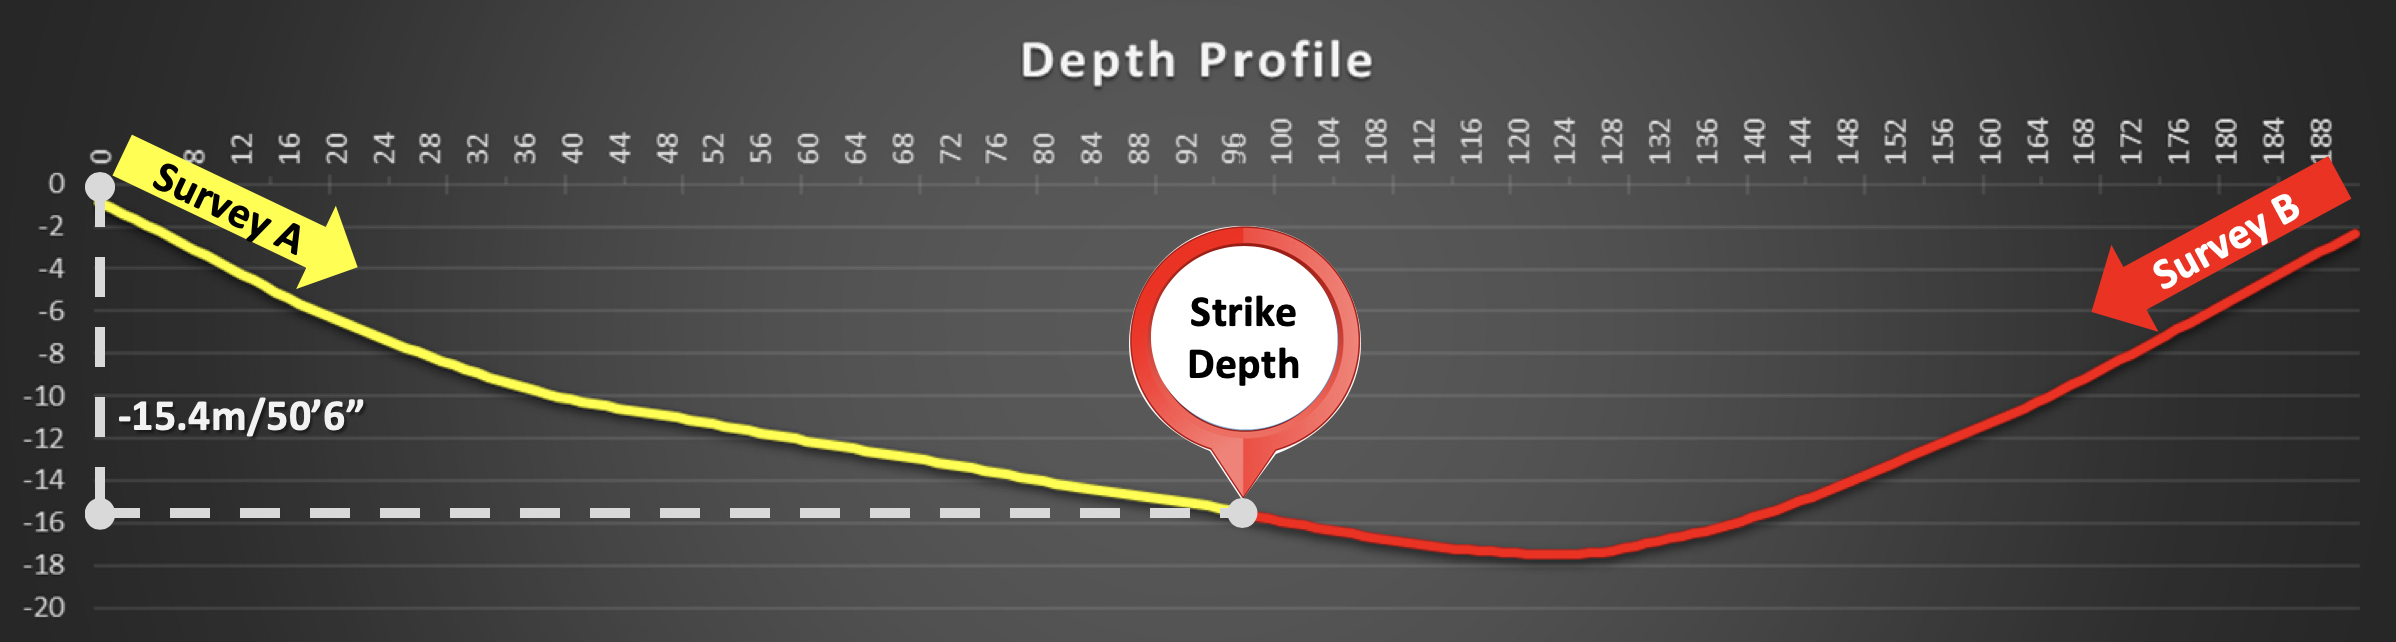 Reduct As-build depth profile